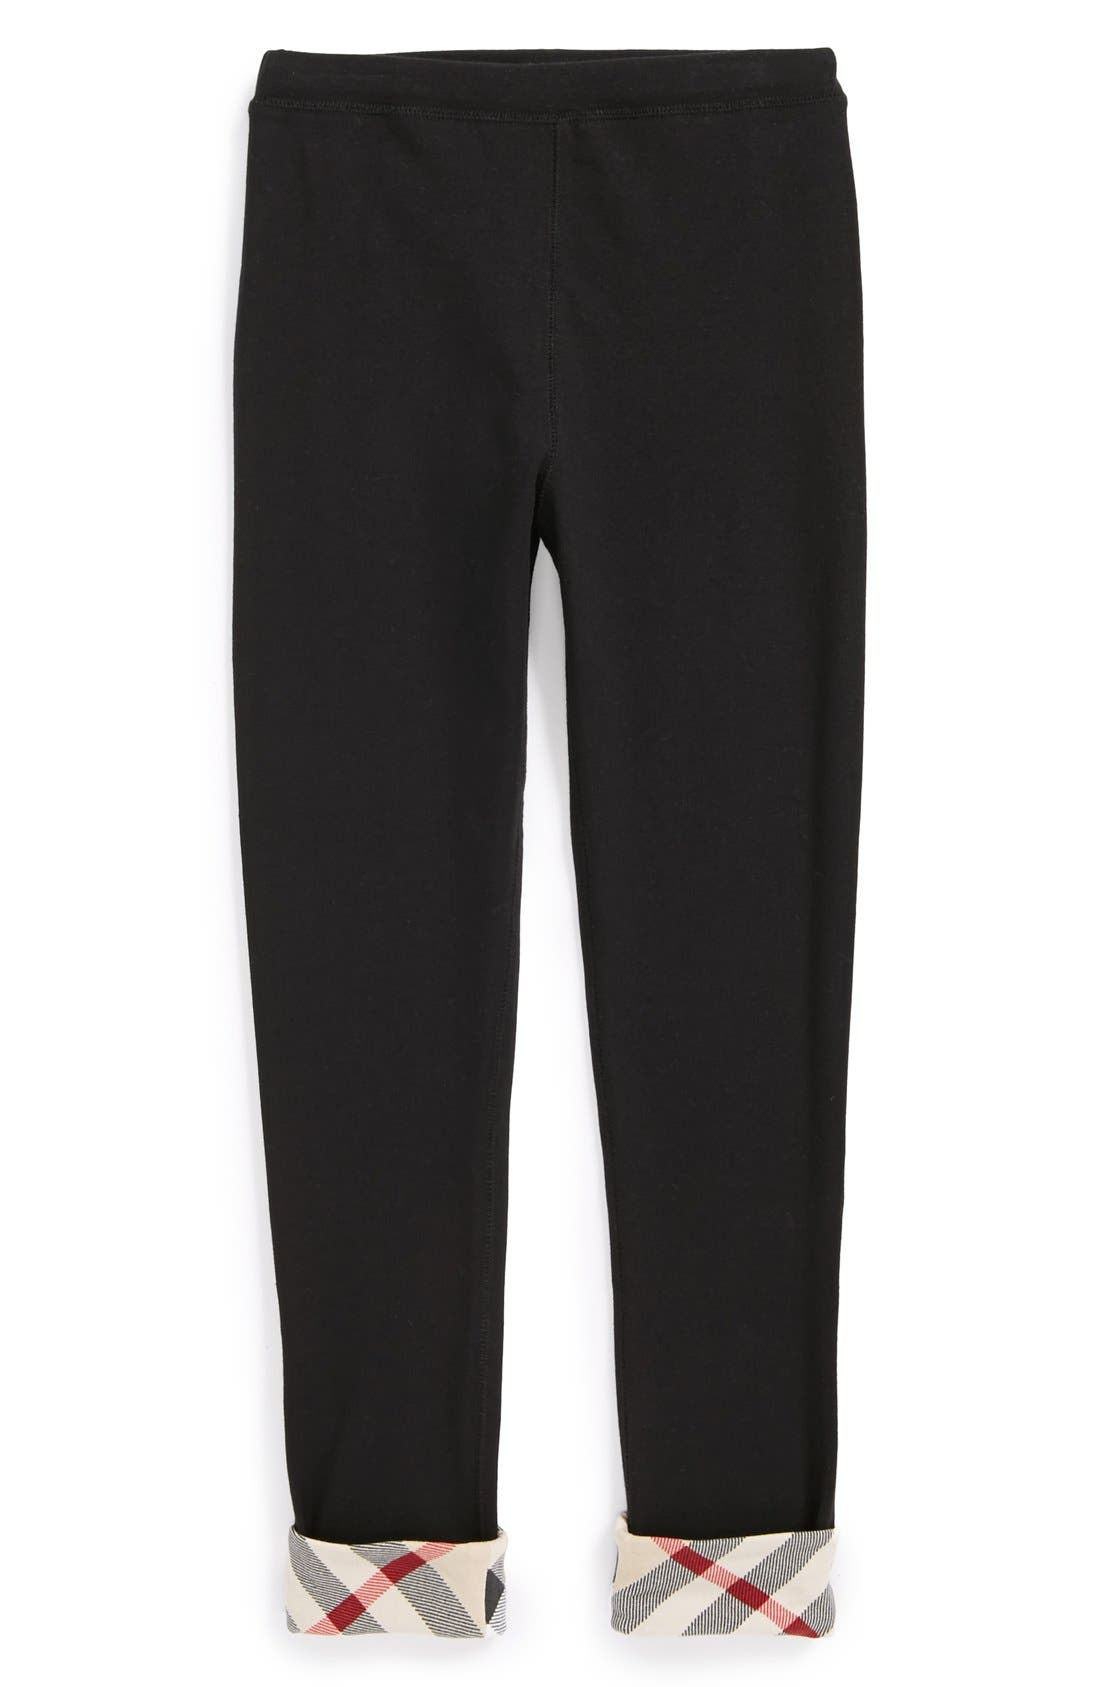 Check Cuff Pants,                         Main,                         color, Black